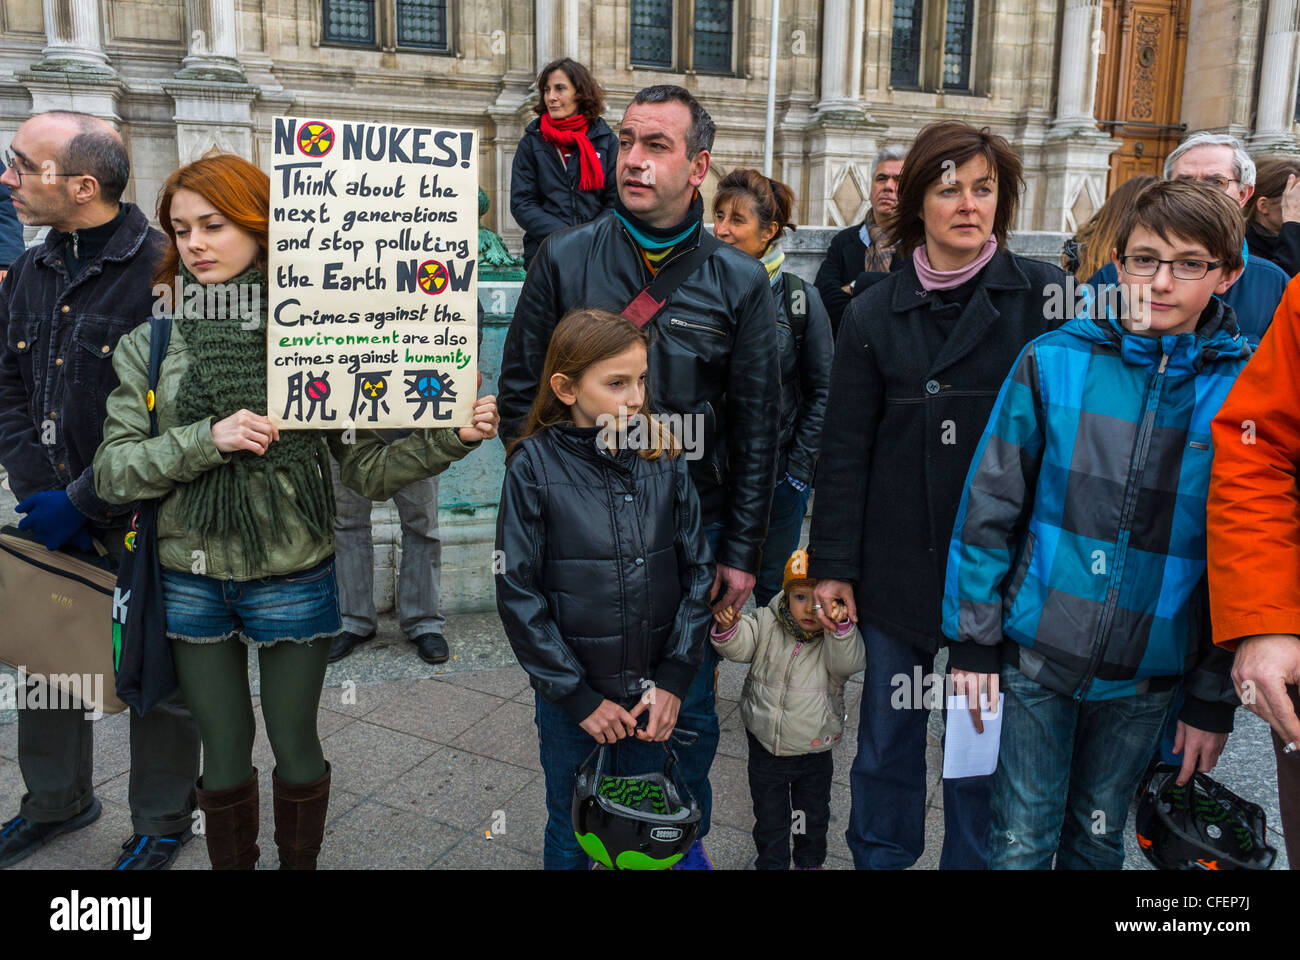 Paris, France, Anti Nuclear Power Activists Demonstrating on Anniversary of Fukushima Disaster, French Family protesting, - Stock Image